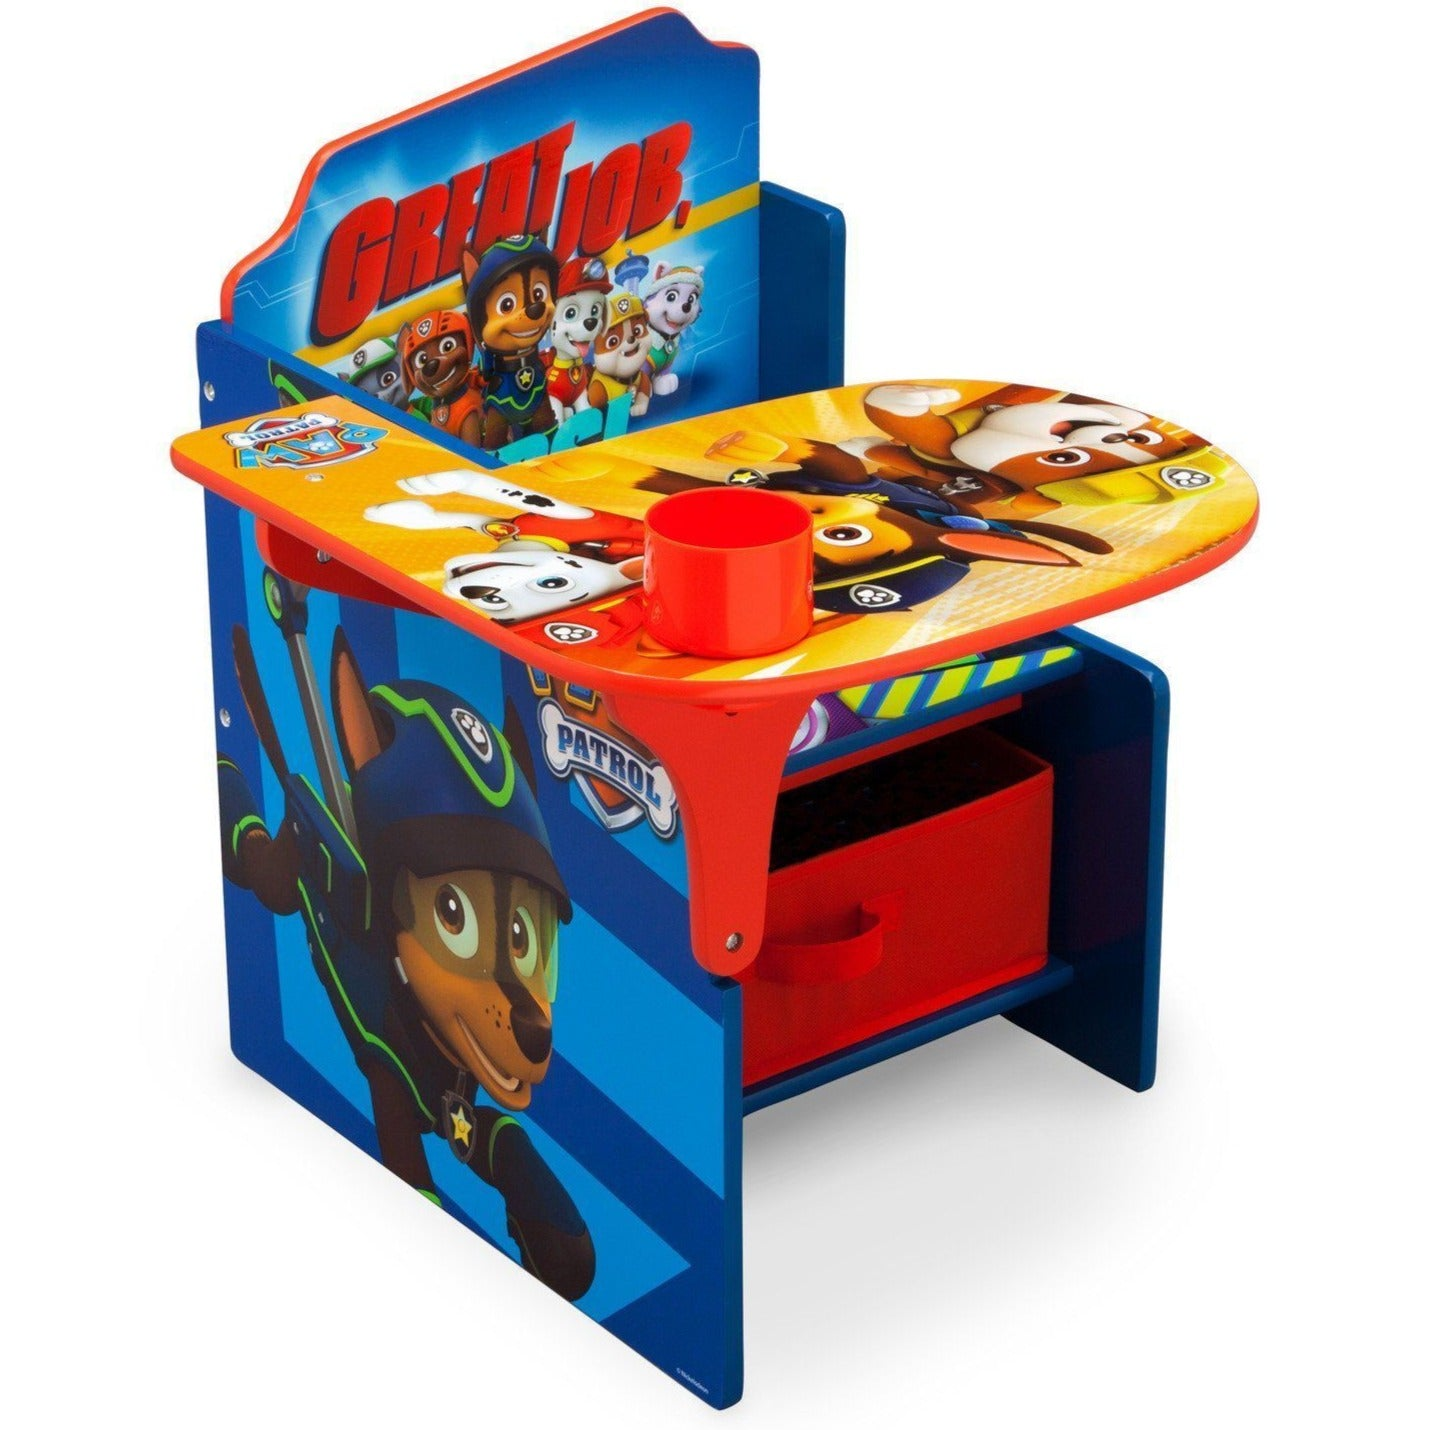 Delta Children PAW Patrol Chair Desk With Storage Bin, Right View A1a ...